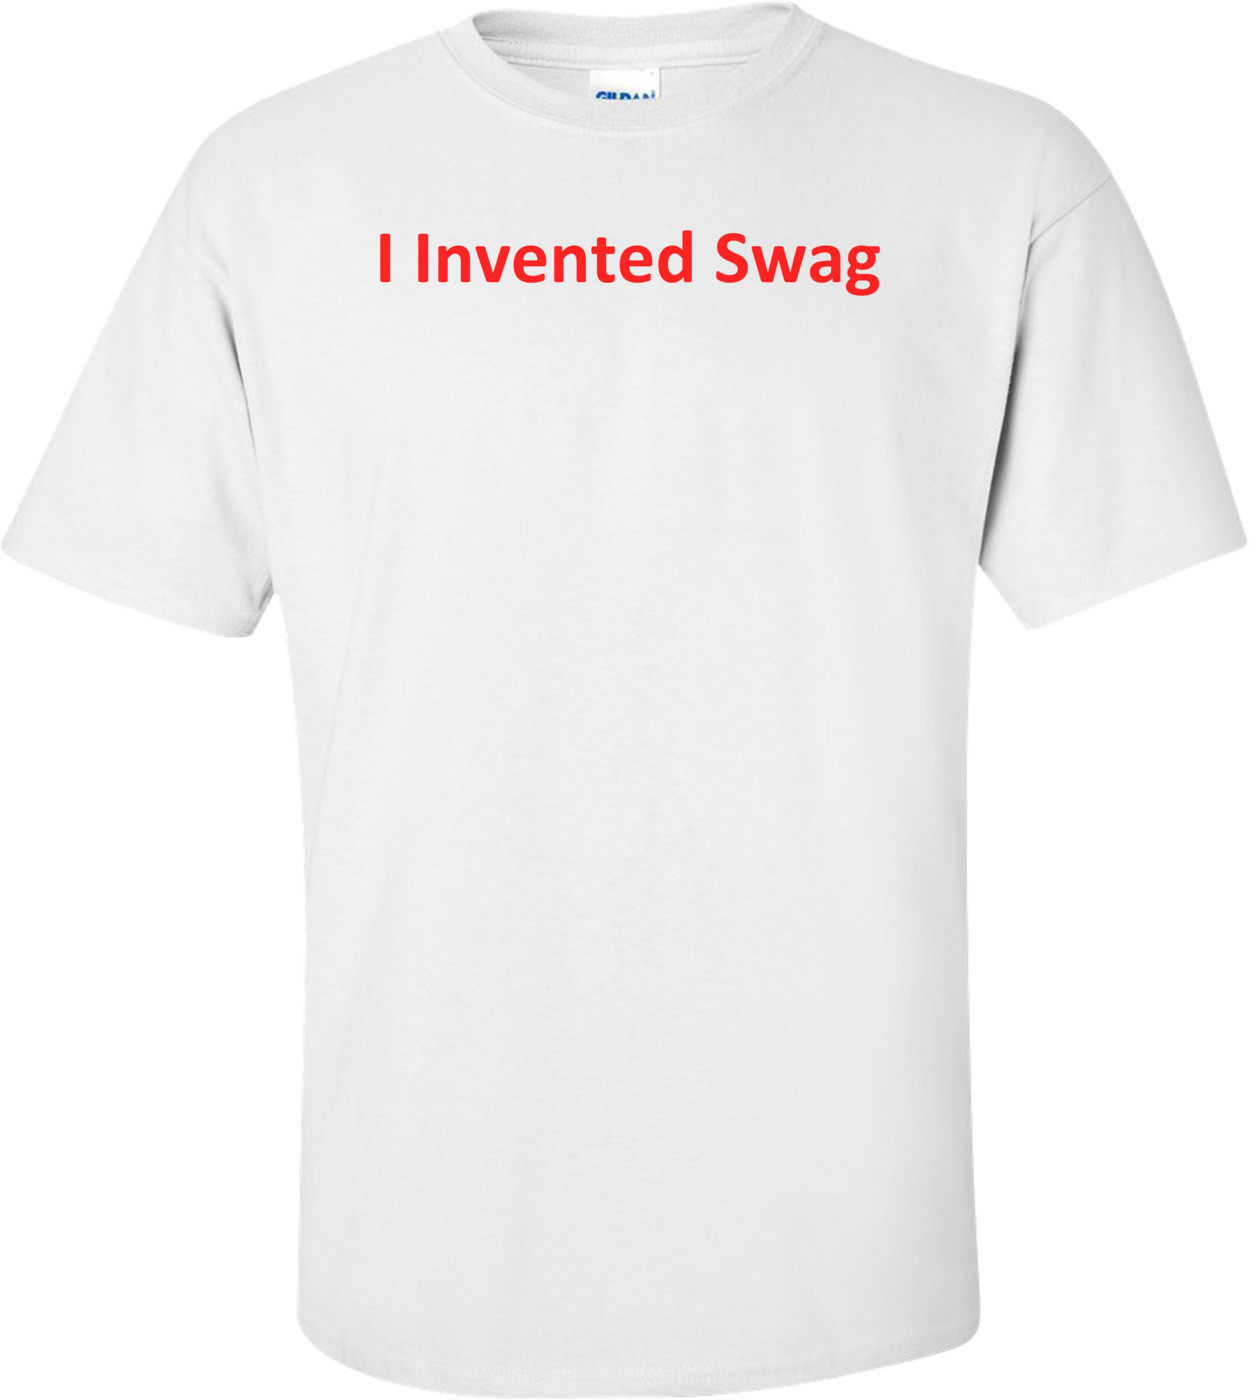 I Invented Swag Shirt